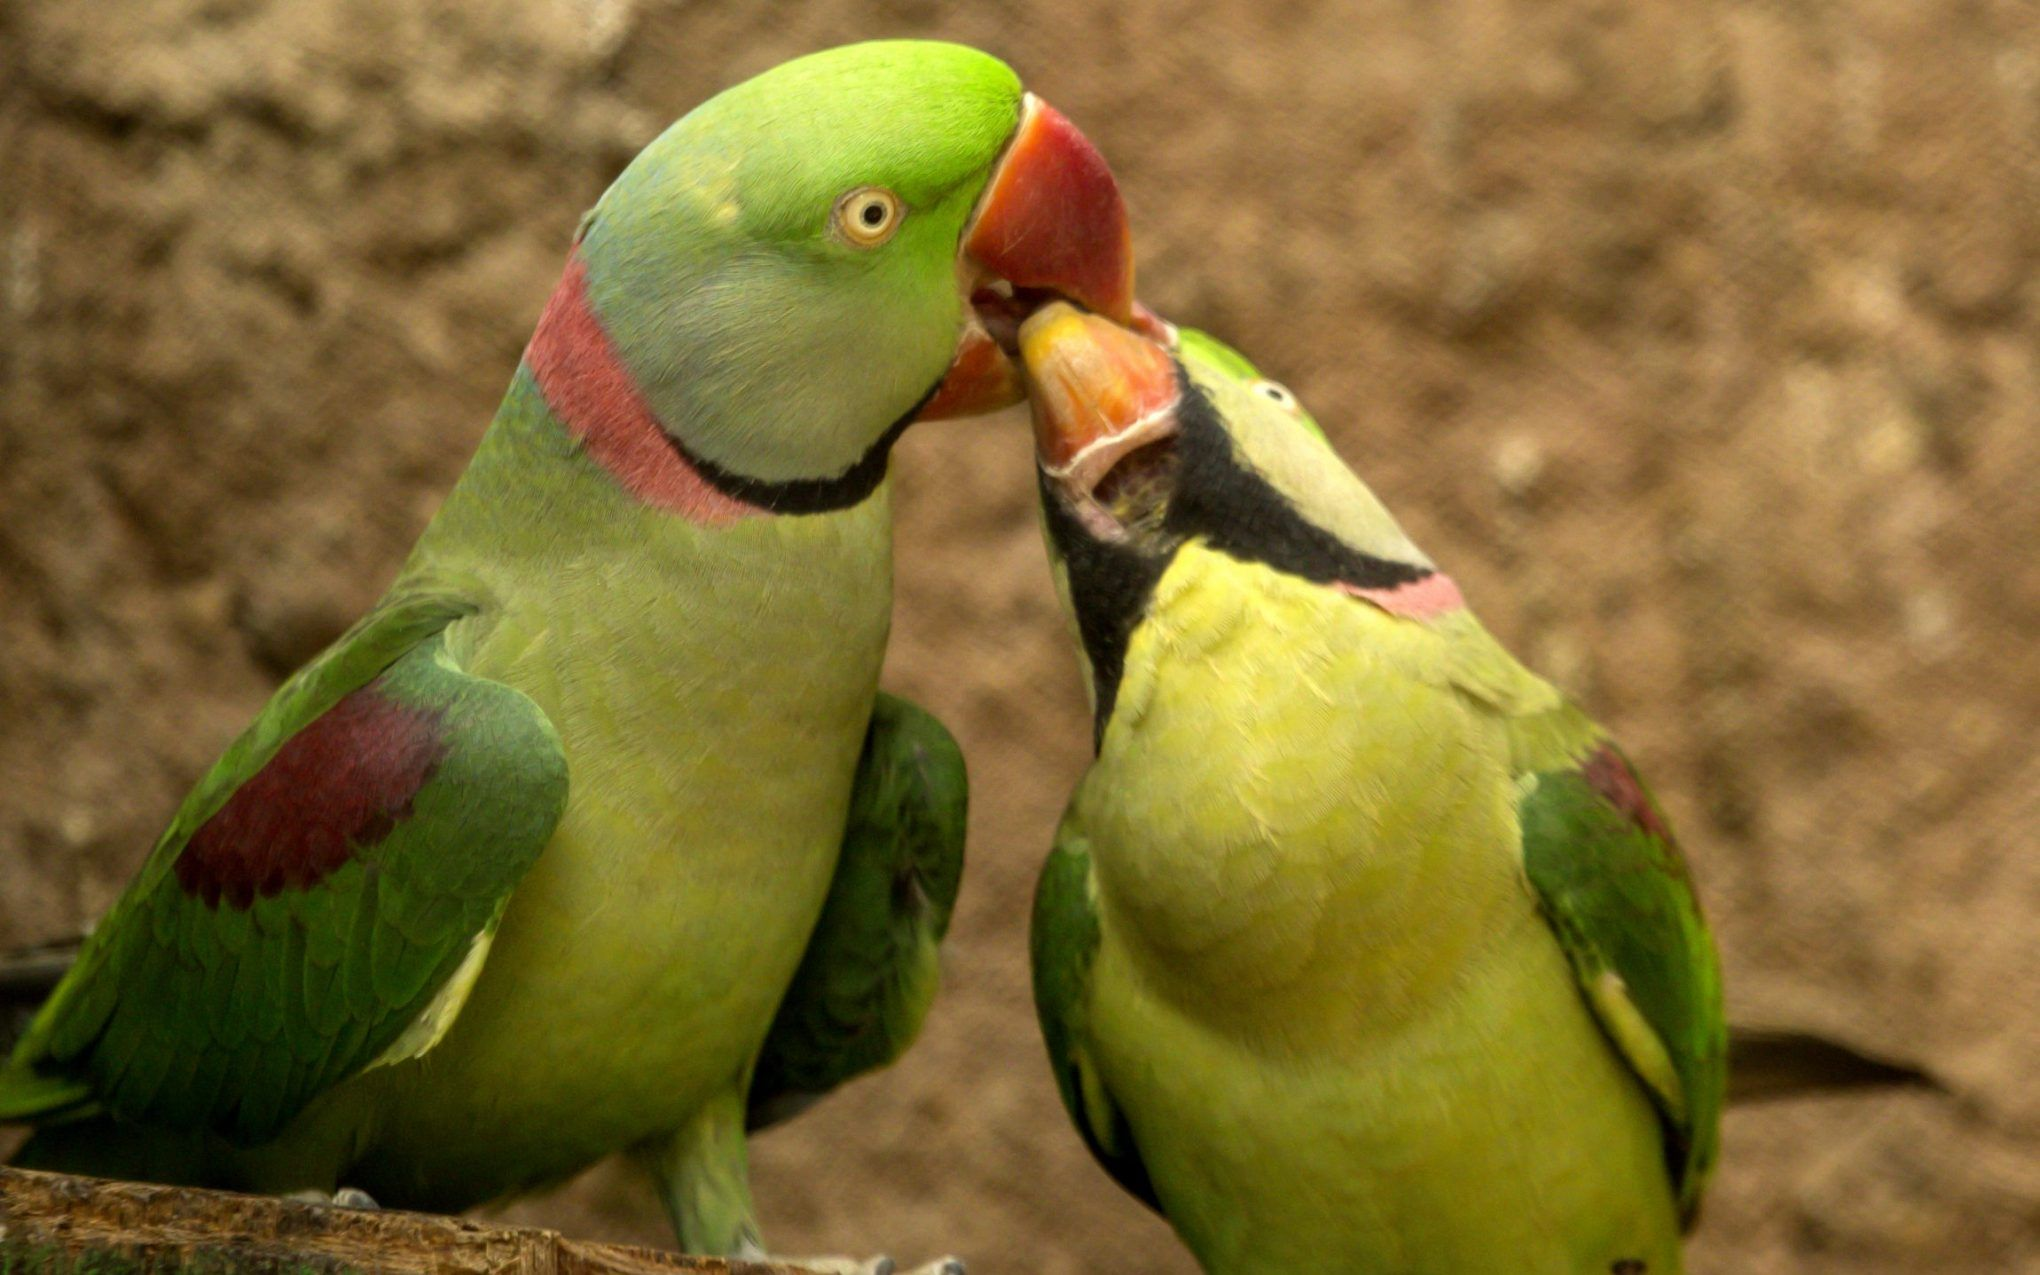 Parrot Love Couple Wallpaper HD Indian Stock Images Digital 2040x1275